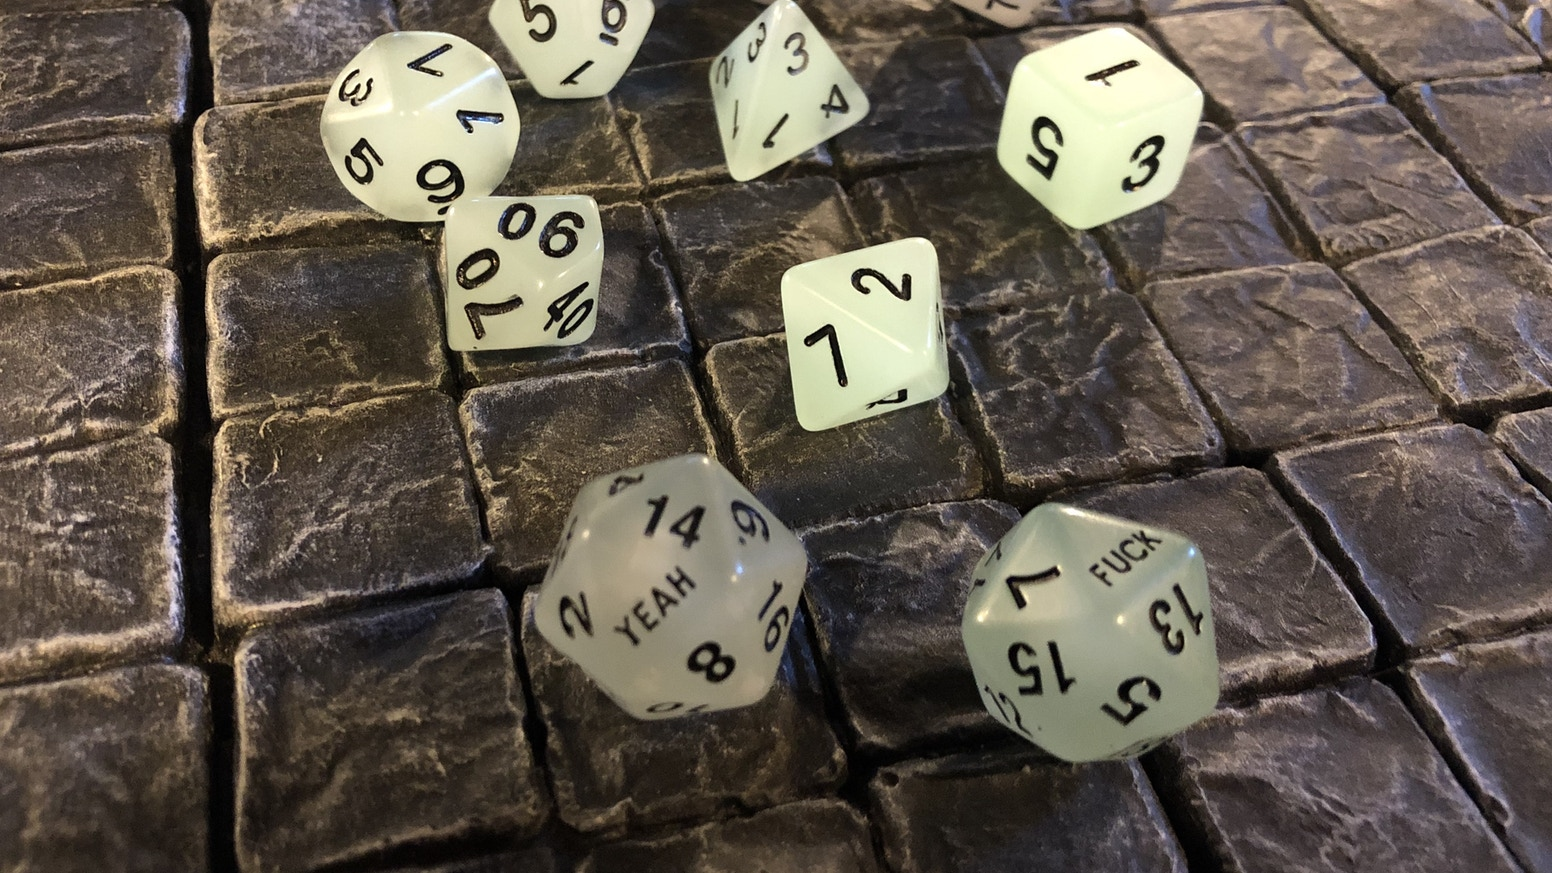 Limited edition glow-in-the-dark dice sets